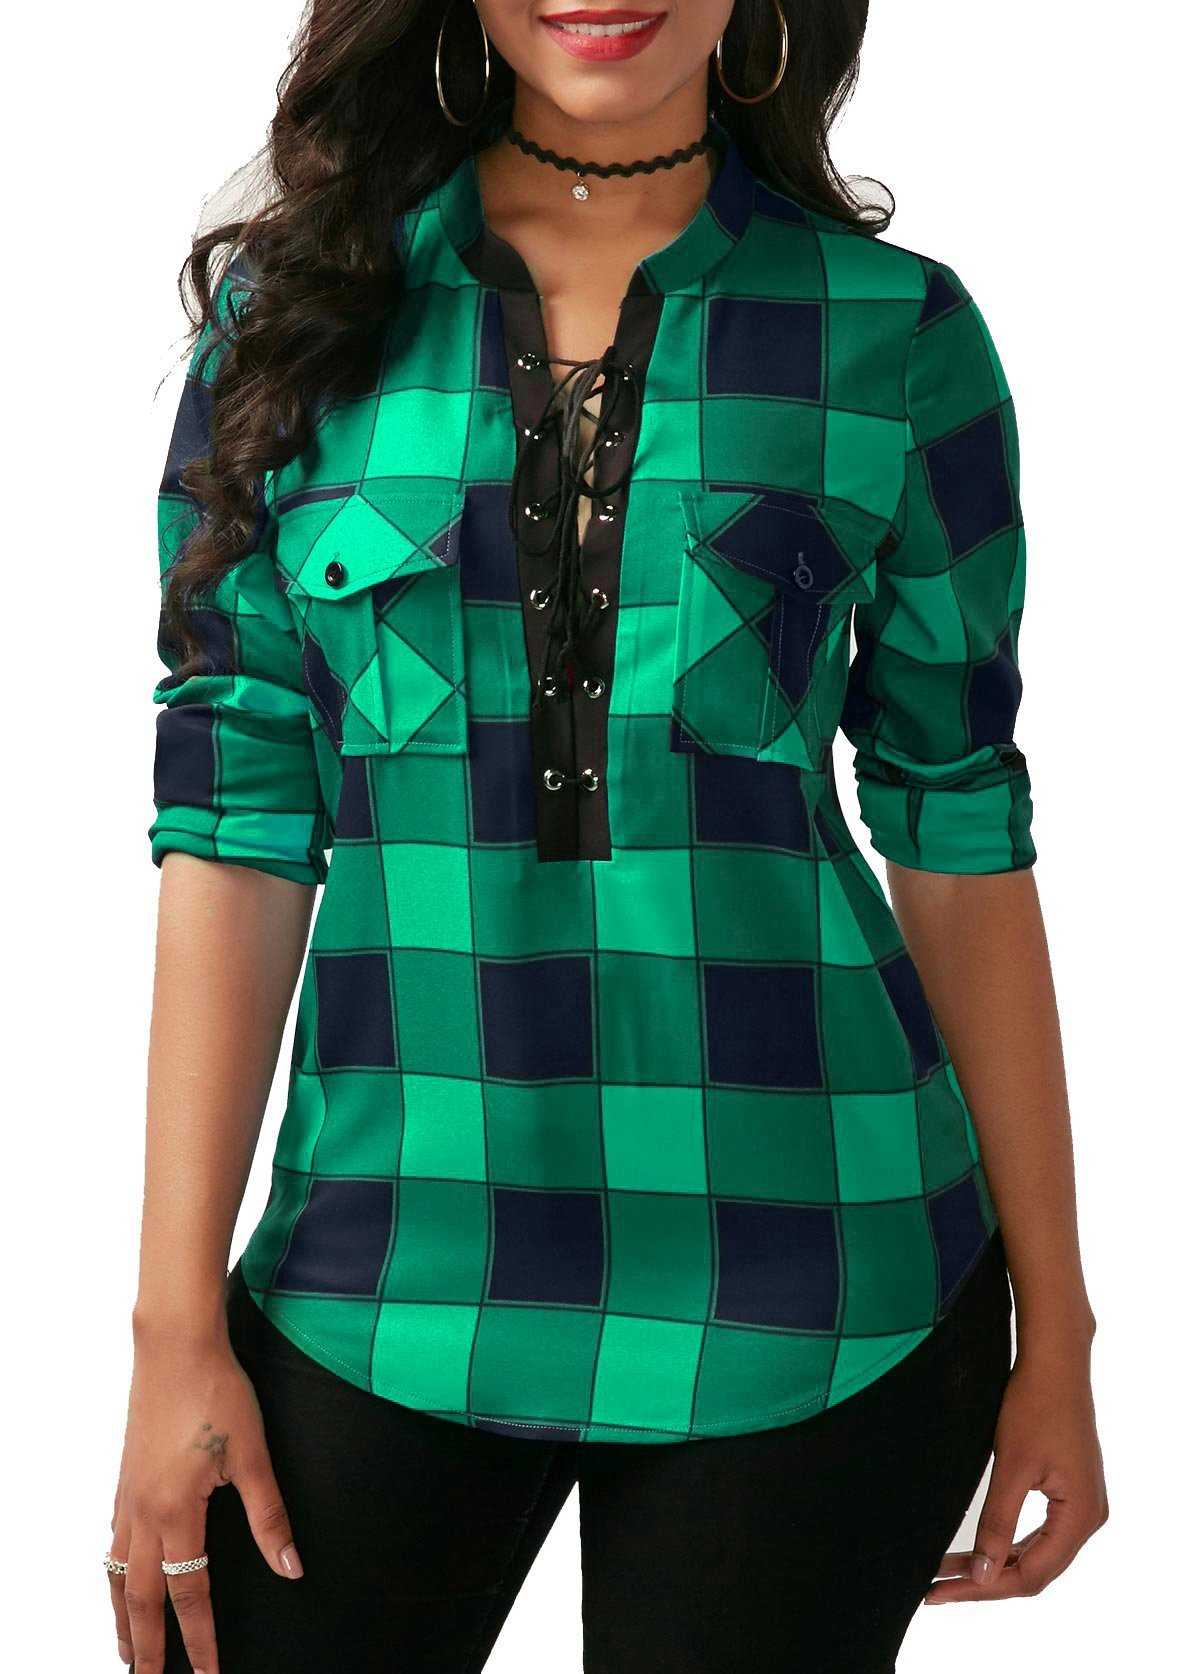 KISSMODA Womens Deep V Neck Slim Fit Pullover Roll up Sleeves Tops and Blouses Green Medium